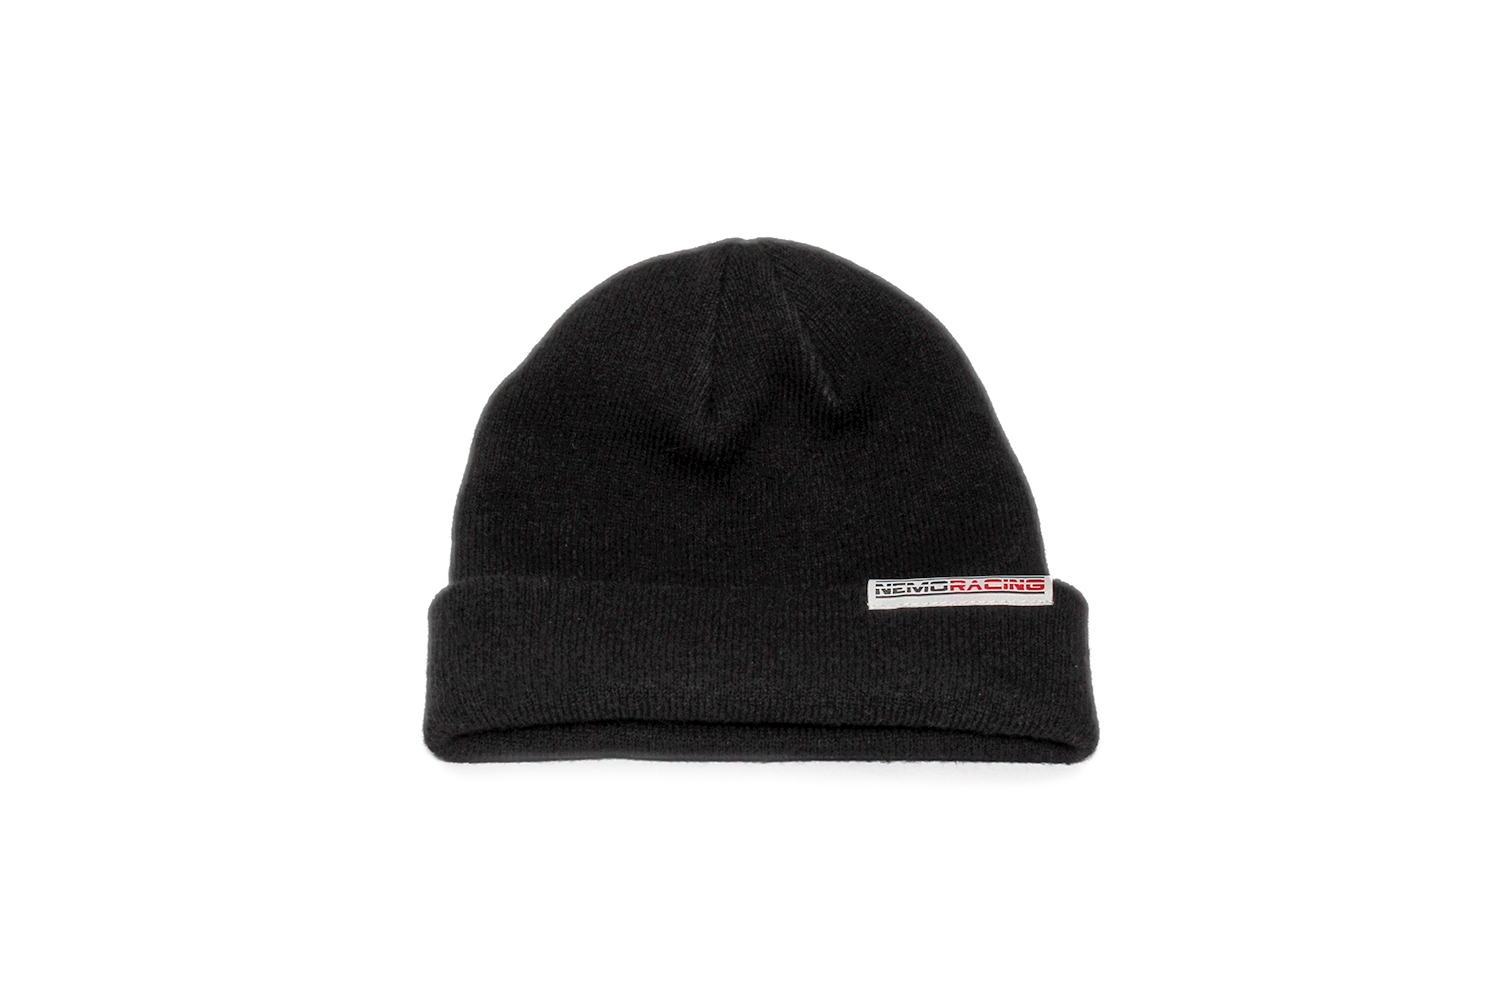 NMR0015 Nemo Racing Beanie Team Hat